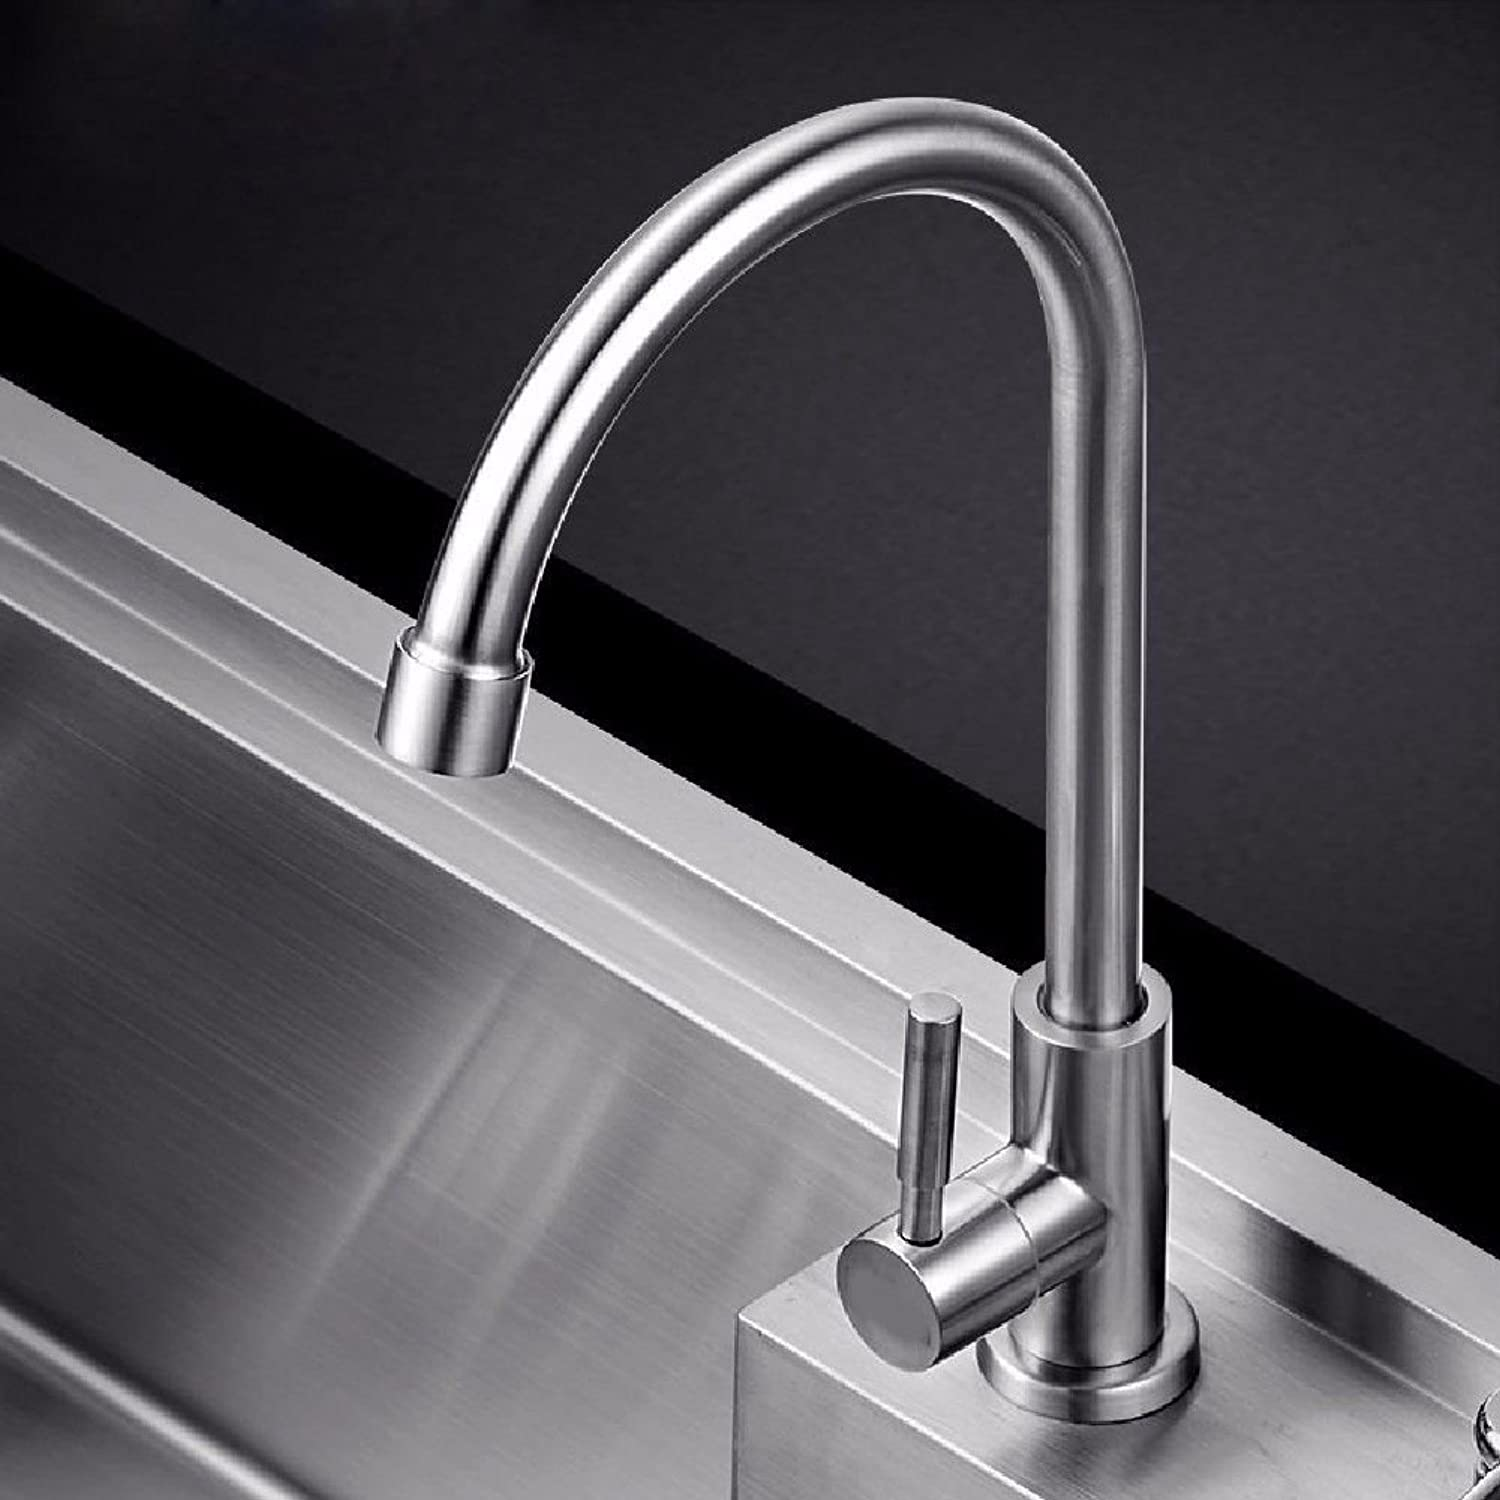 Commercial Single Lever Pull Down Kitchen Sink Faucet Brass Constructed Polished Kitchen 304 Stainless Steel Faucet Sink Single Cold Faucet Sink Faucet 360 redation